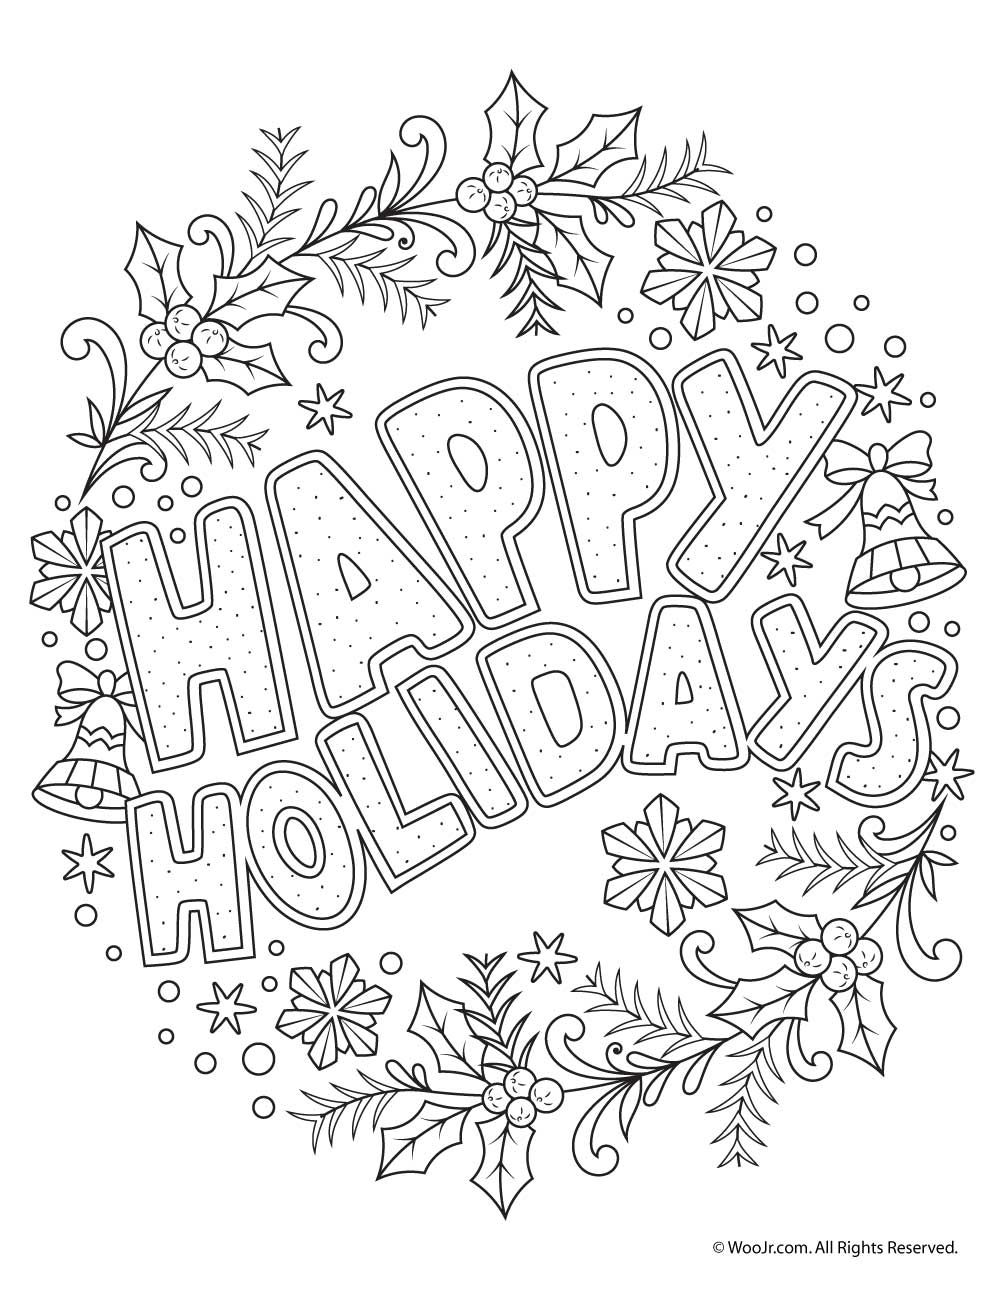 Happy Holidays Adult Coloring Freebie holidays